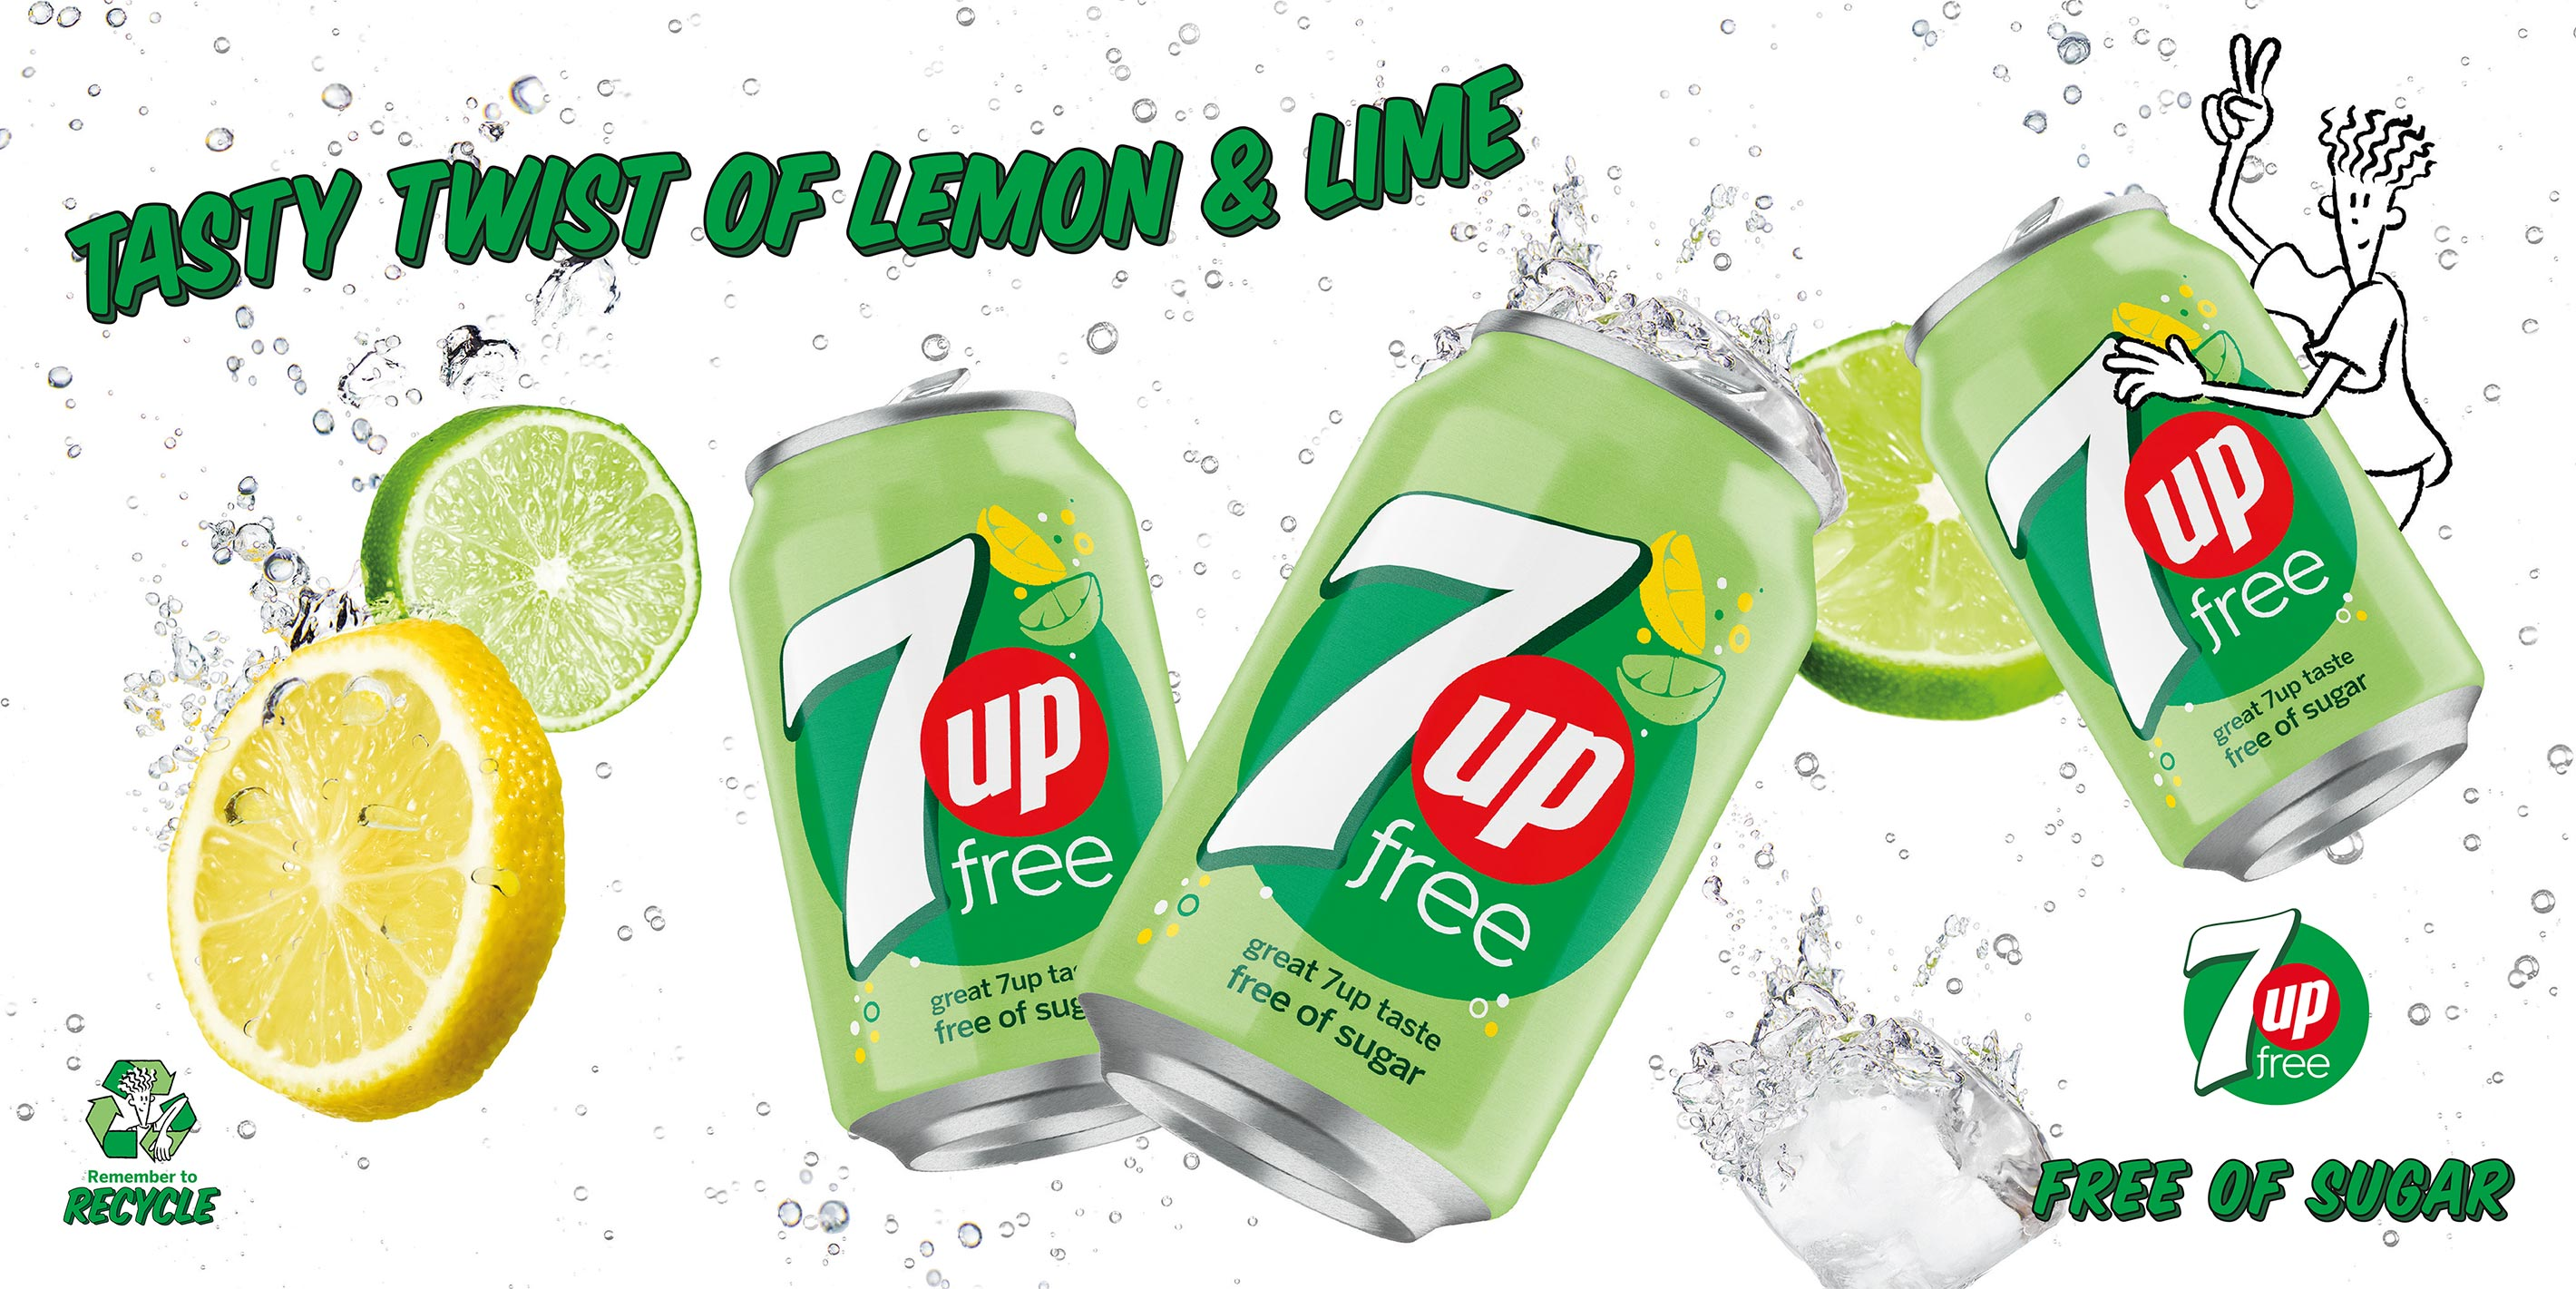 header-landscape-7up-ie@2x